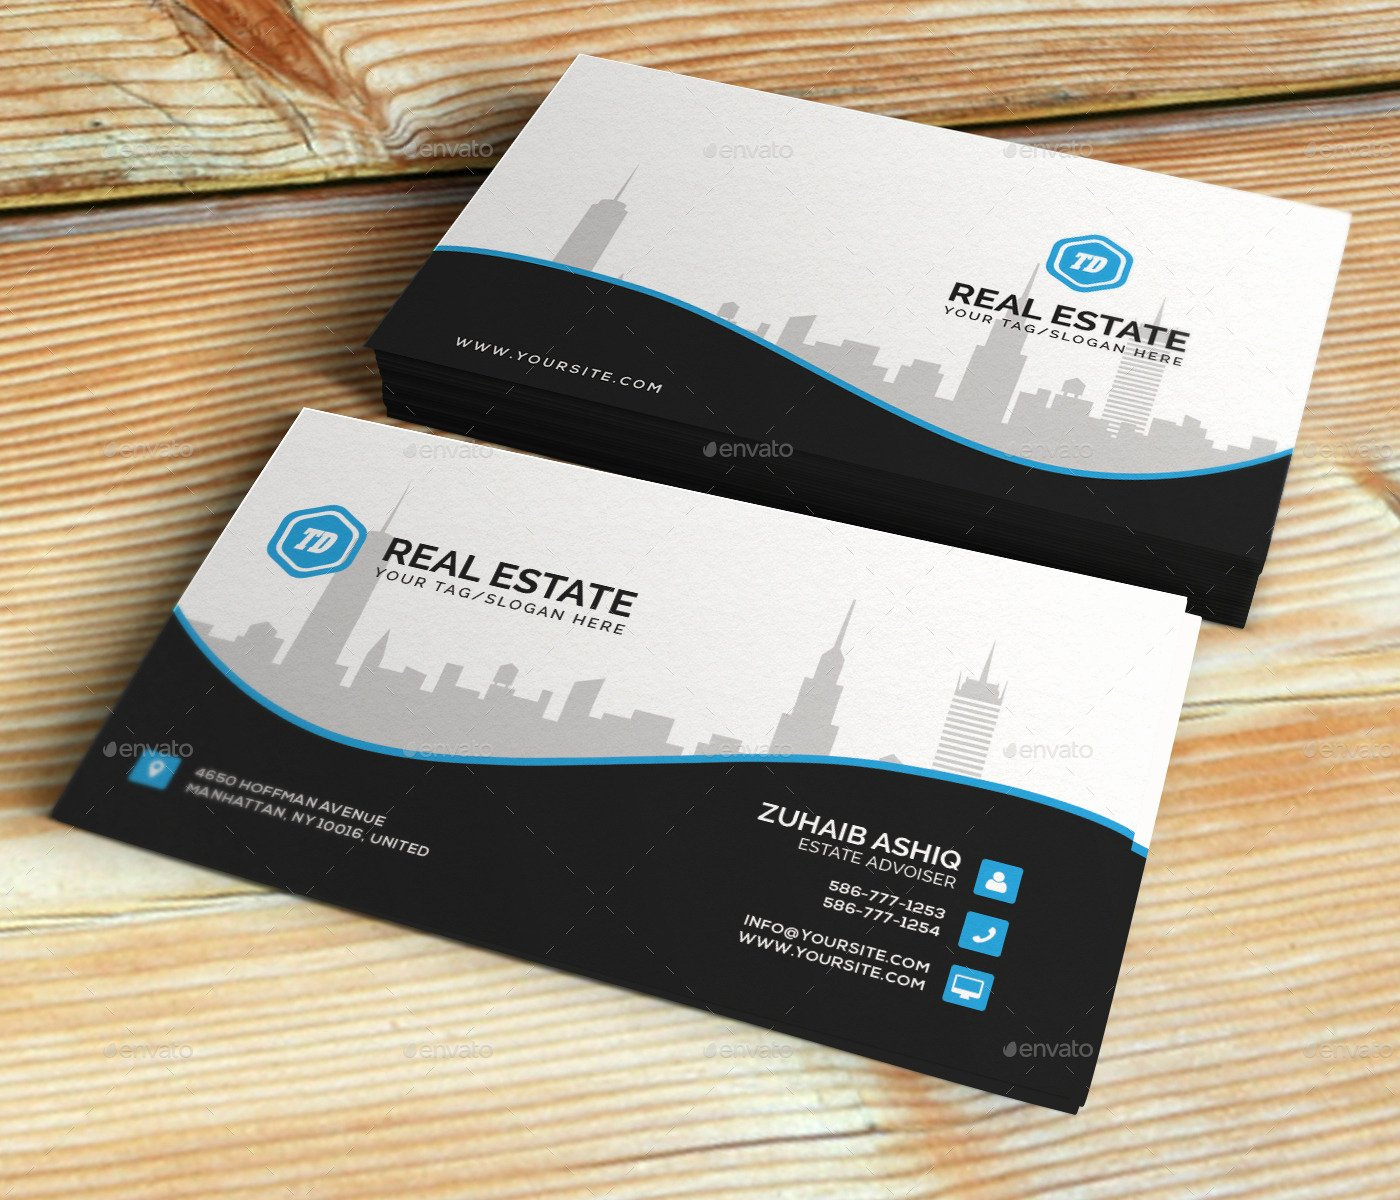 Real Estate Business Card Template by themedesk